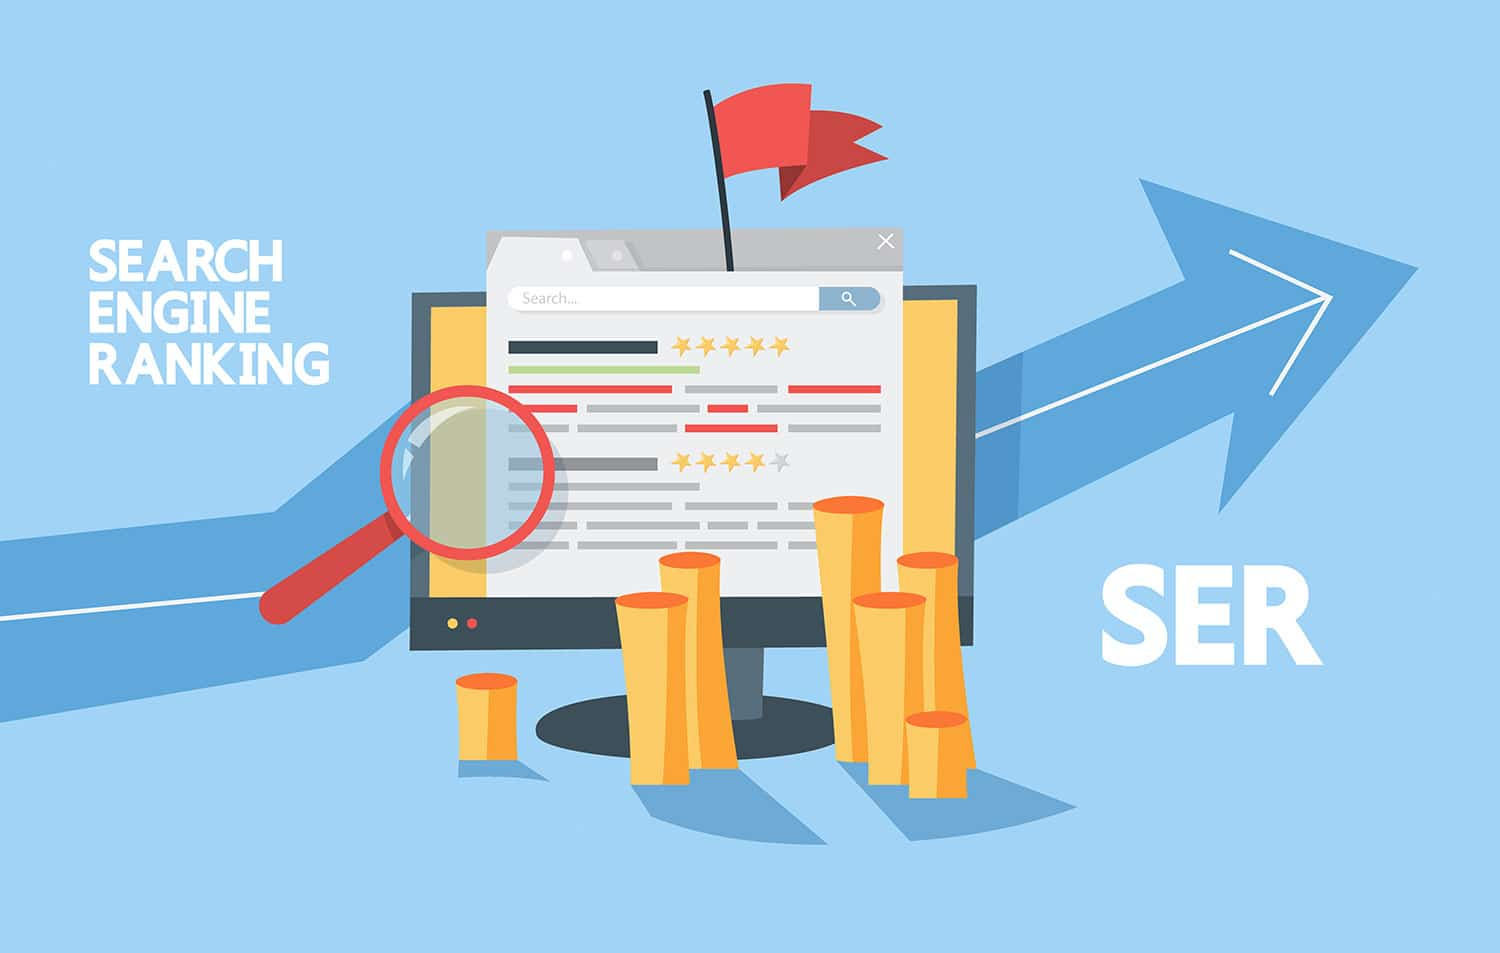 Proven ways to increase search engine ranking